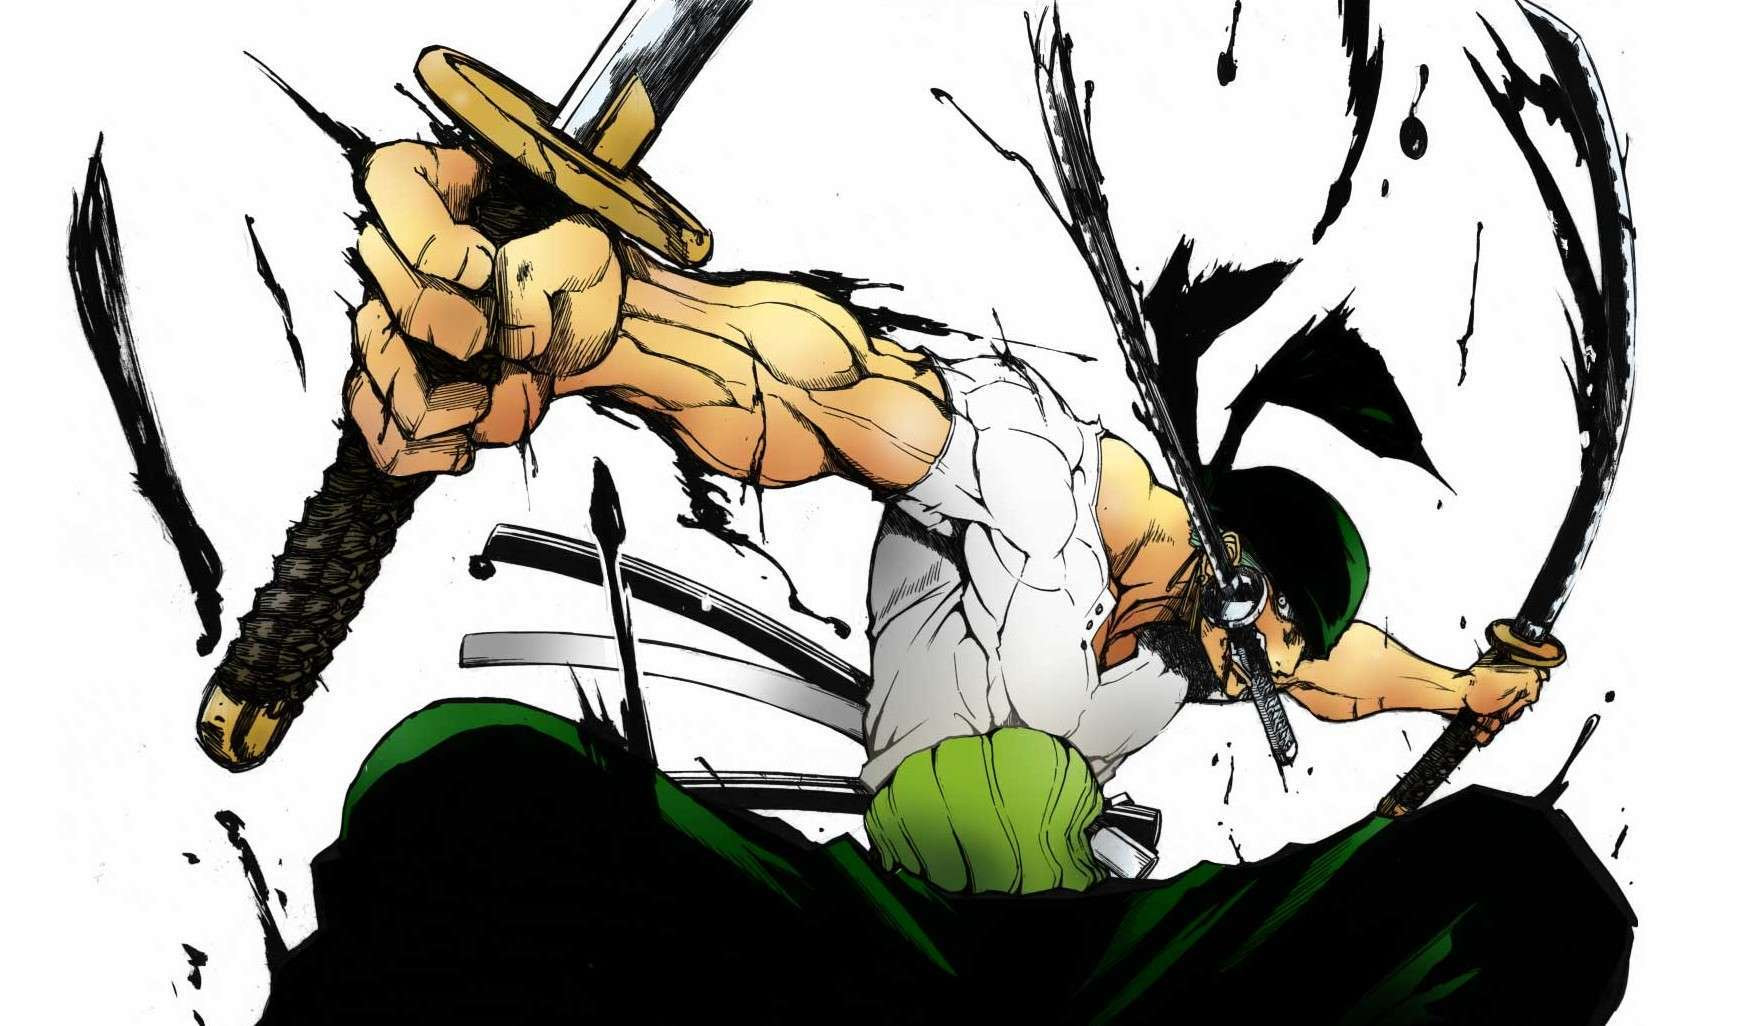 Zoro one piece wallpaper wallpapersafari - One piece logo zoro ...